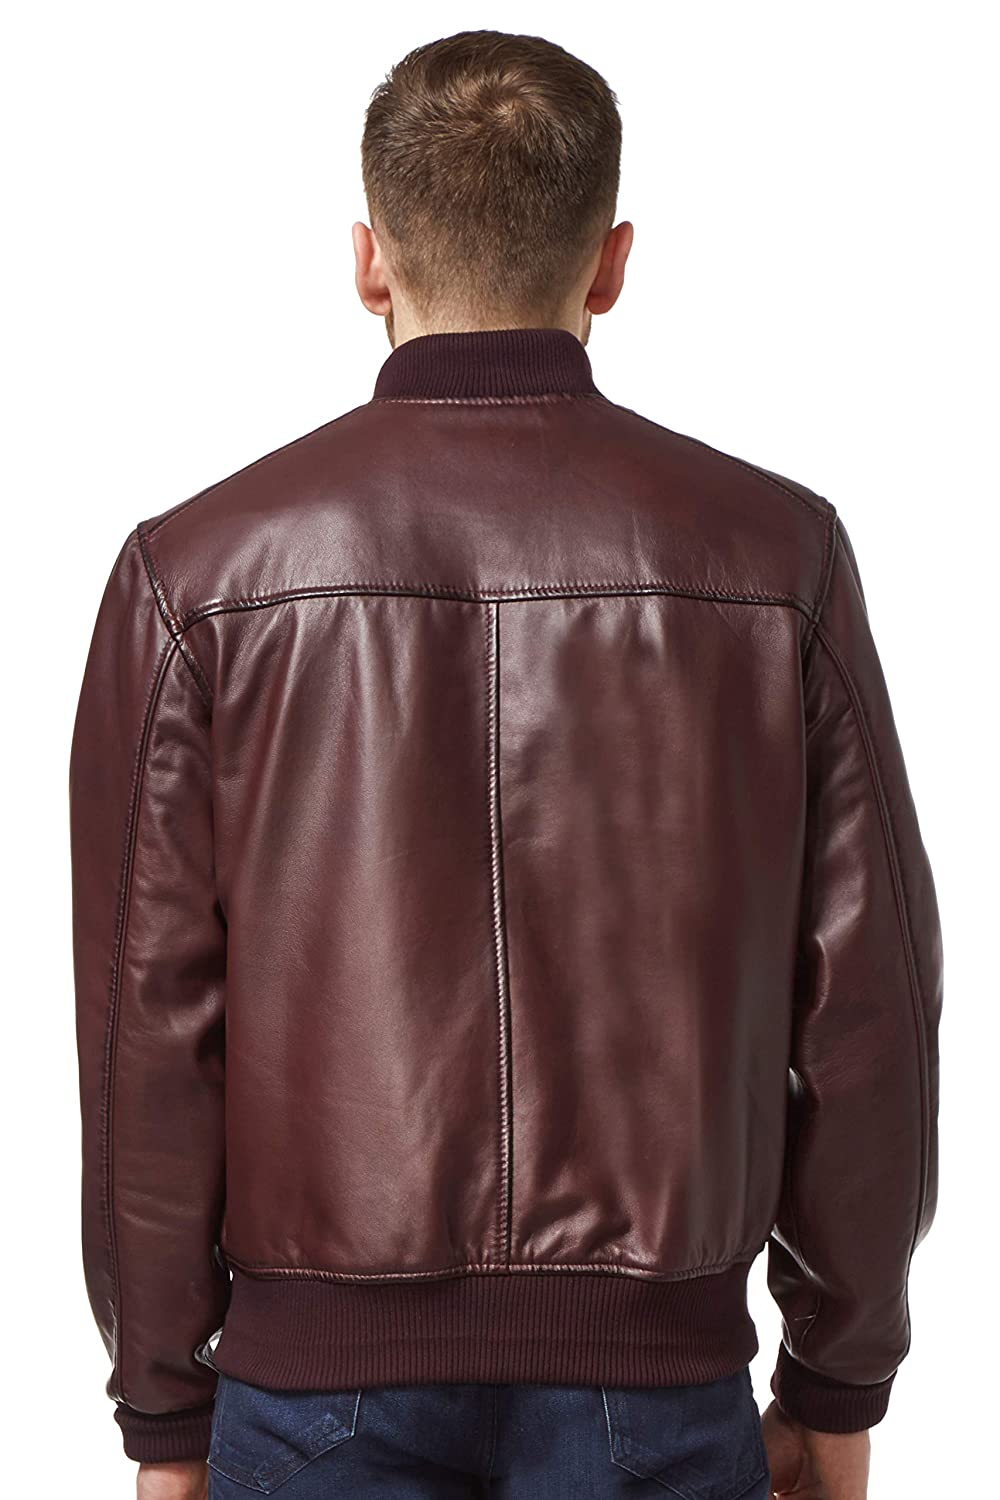 New Stylish Men/'s Tan Classic Italian Tailored Blazer Soft Nappa Leather Jacket